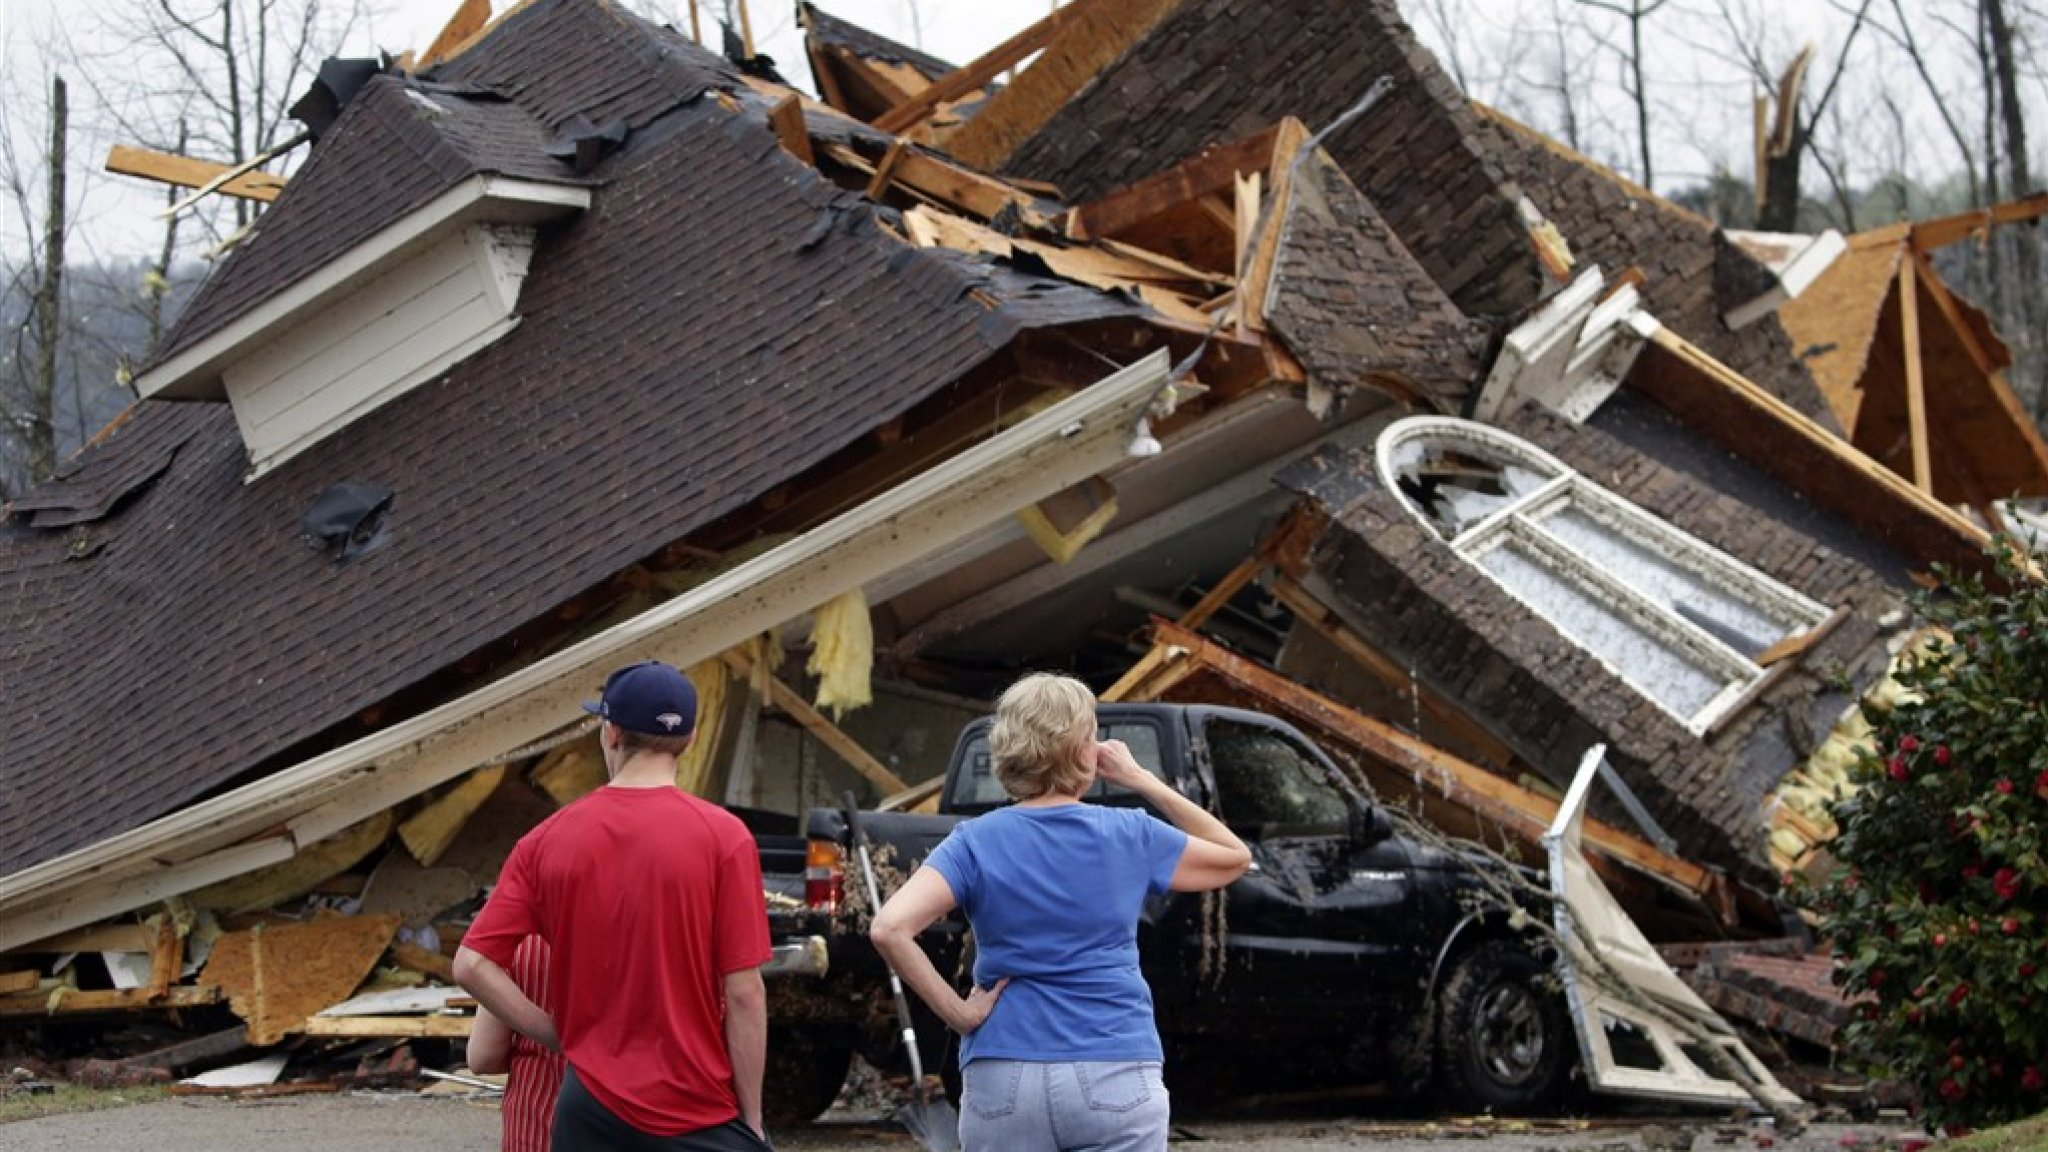 At least five people have died in a hurricane in Alabama